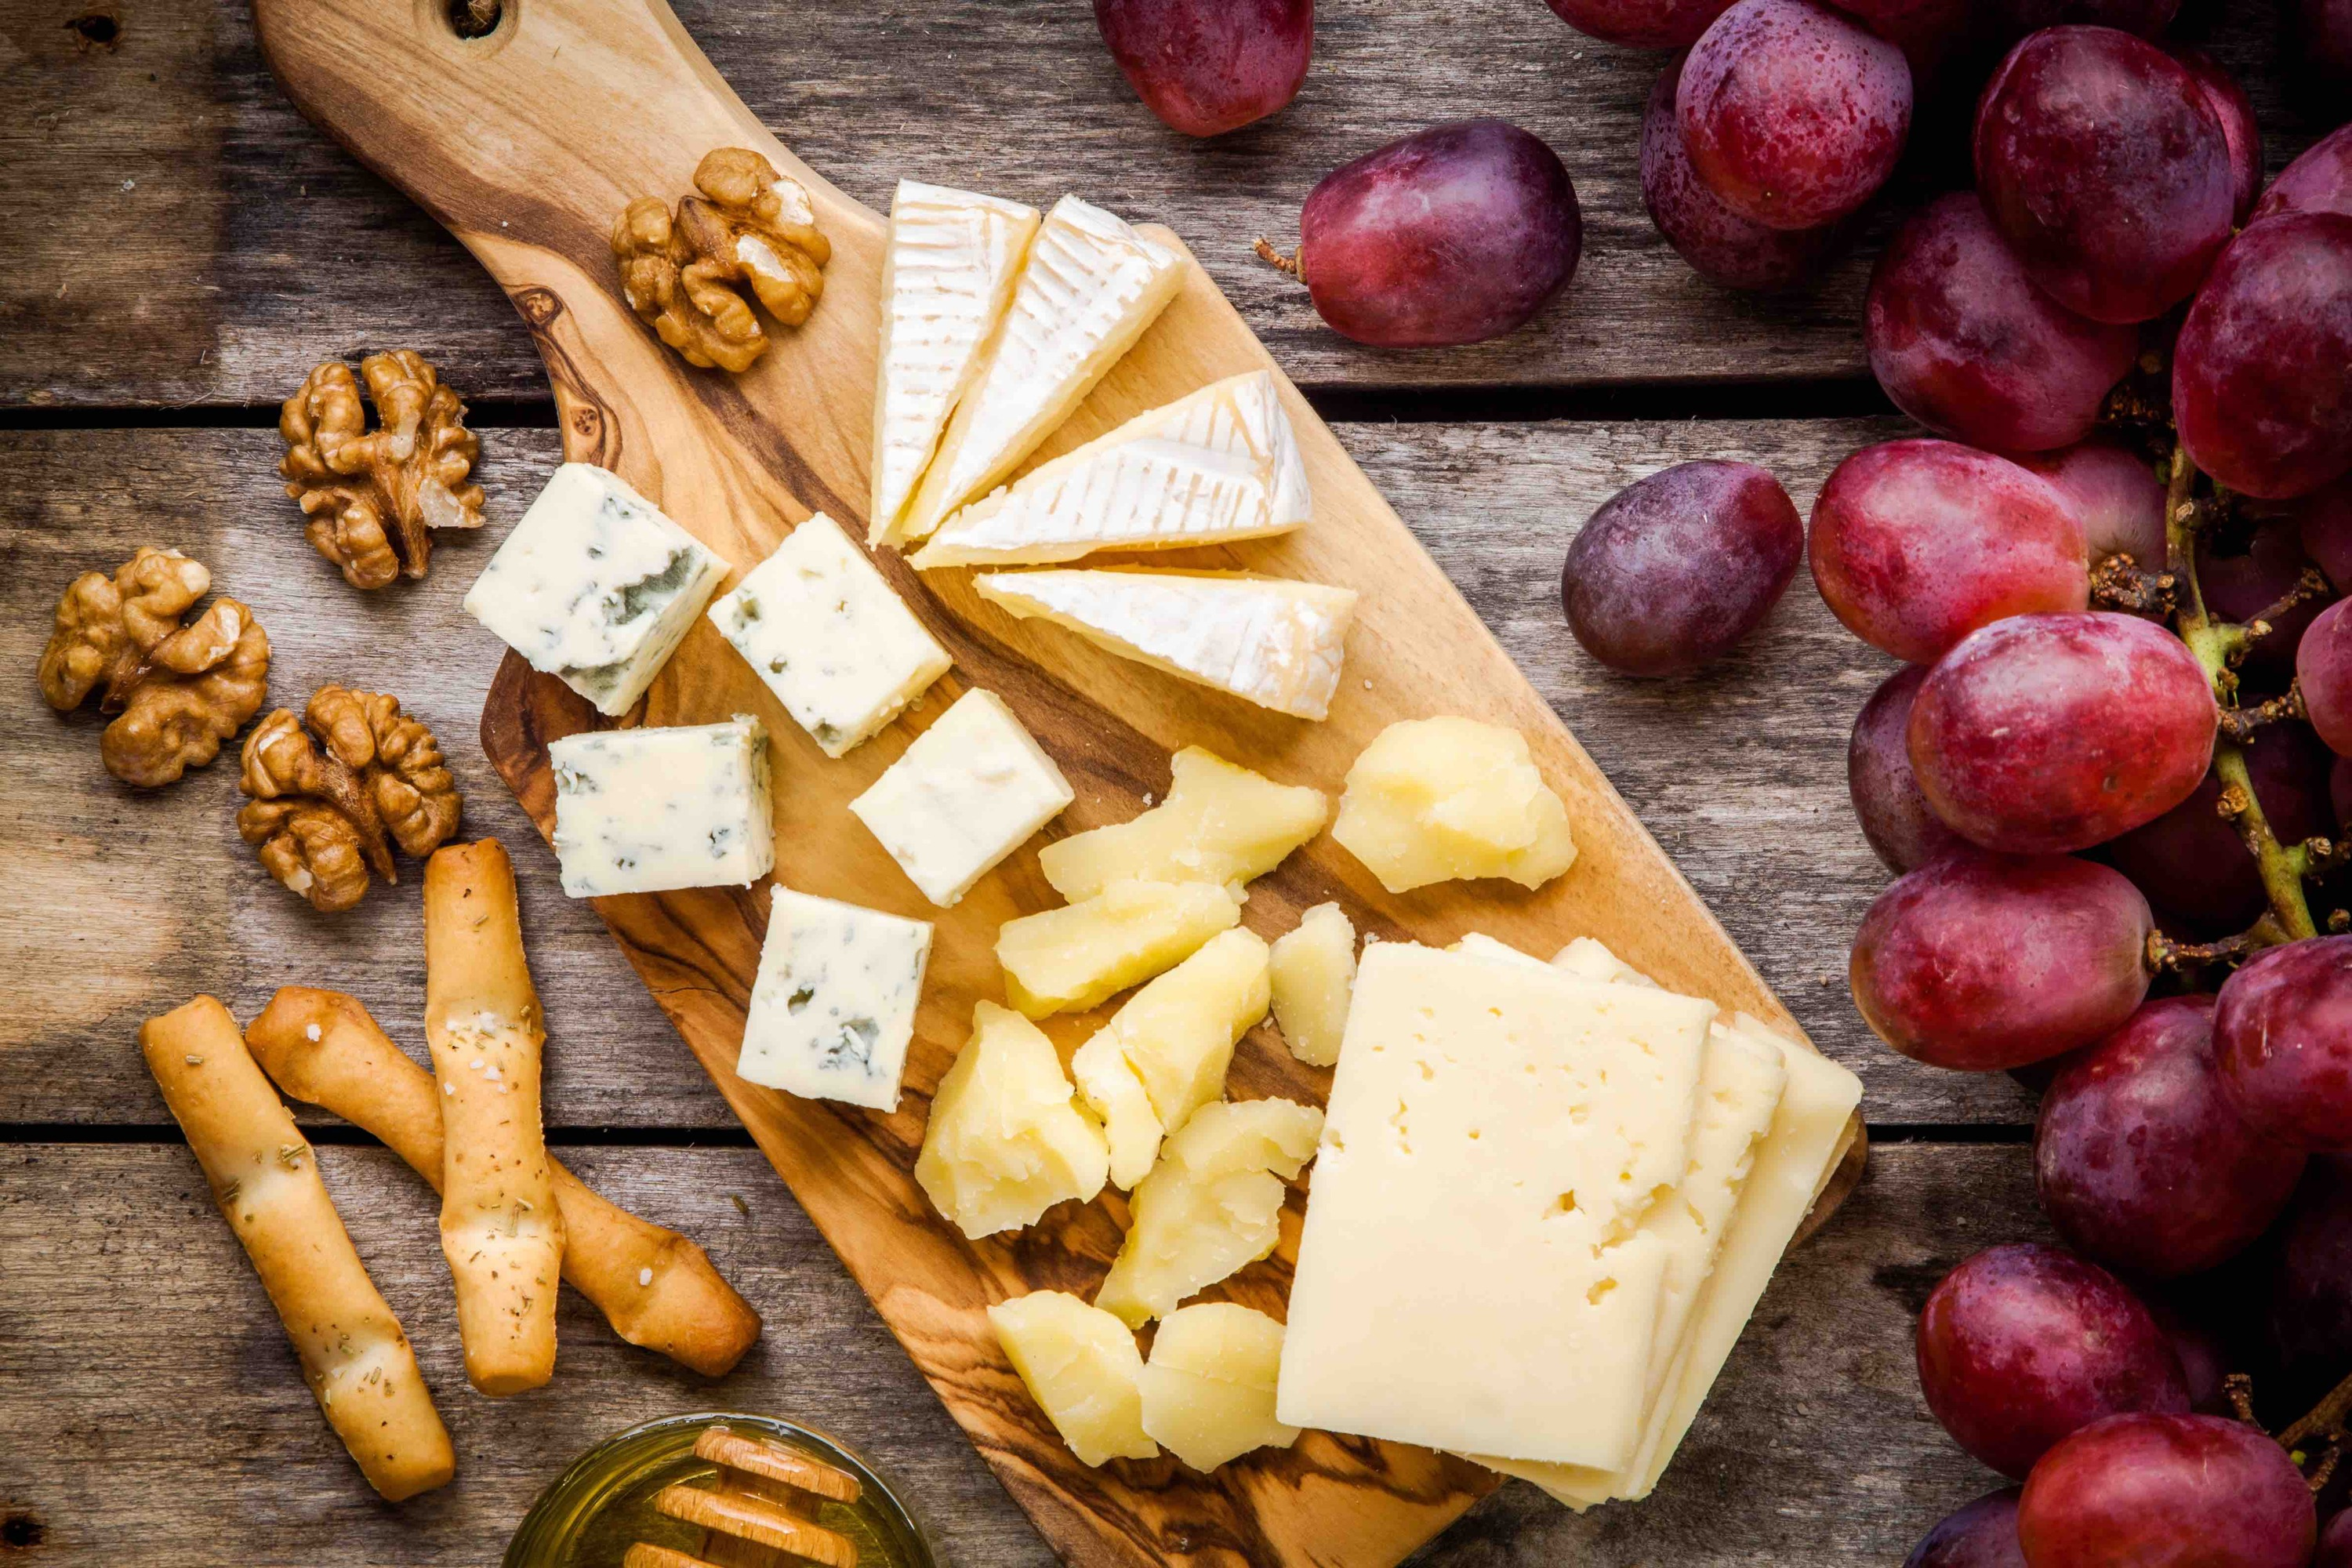 Cheese plate: Emmental, Camembert cheese, blue cheese, bread sticks, walnuts, grapes